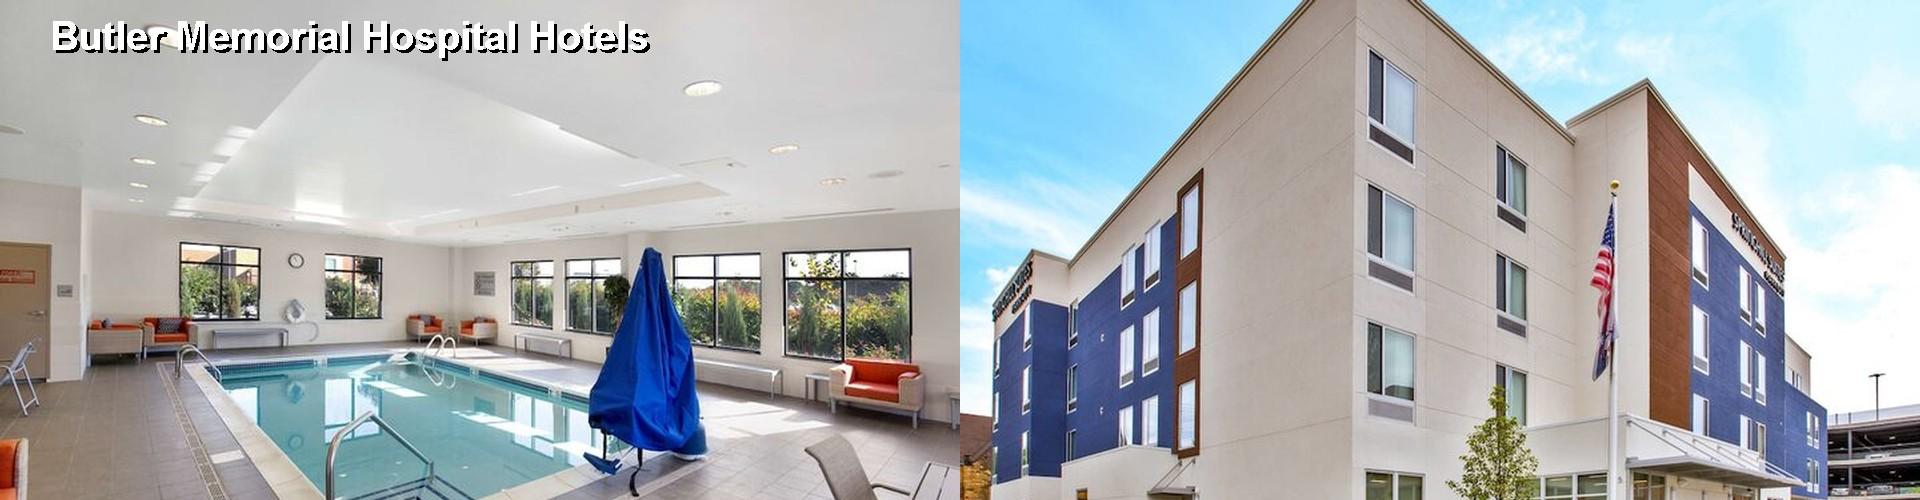 5 Best Hotels near Butler Memorial Hospital